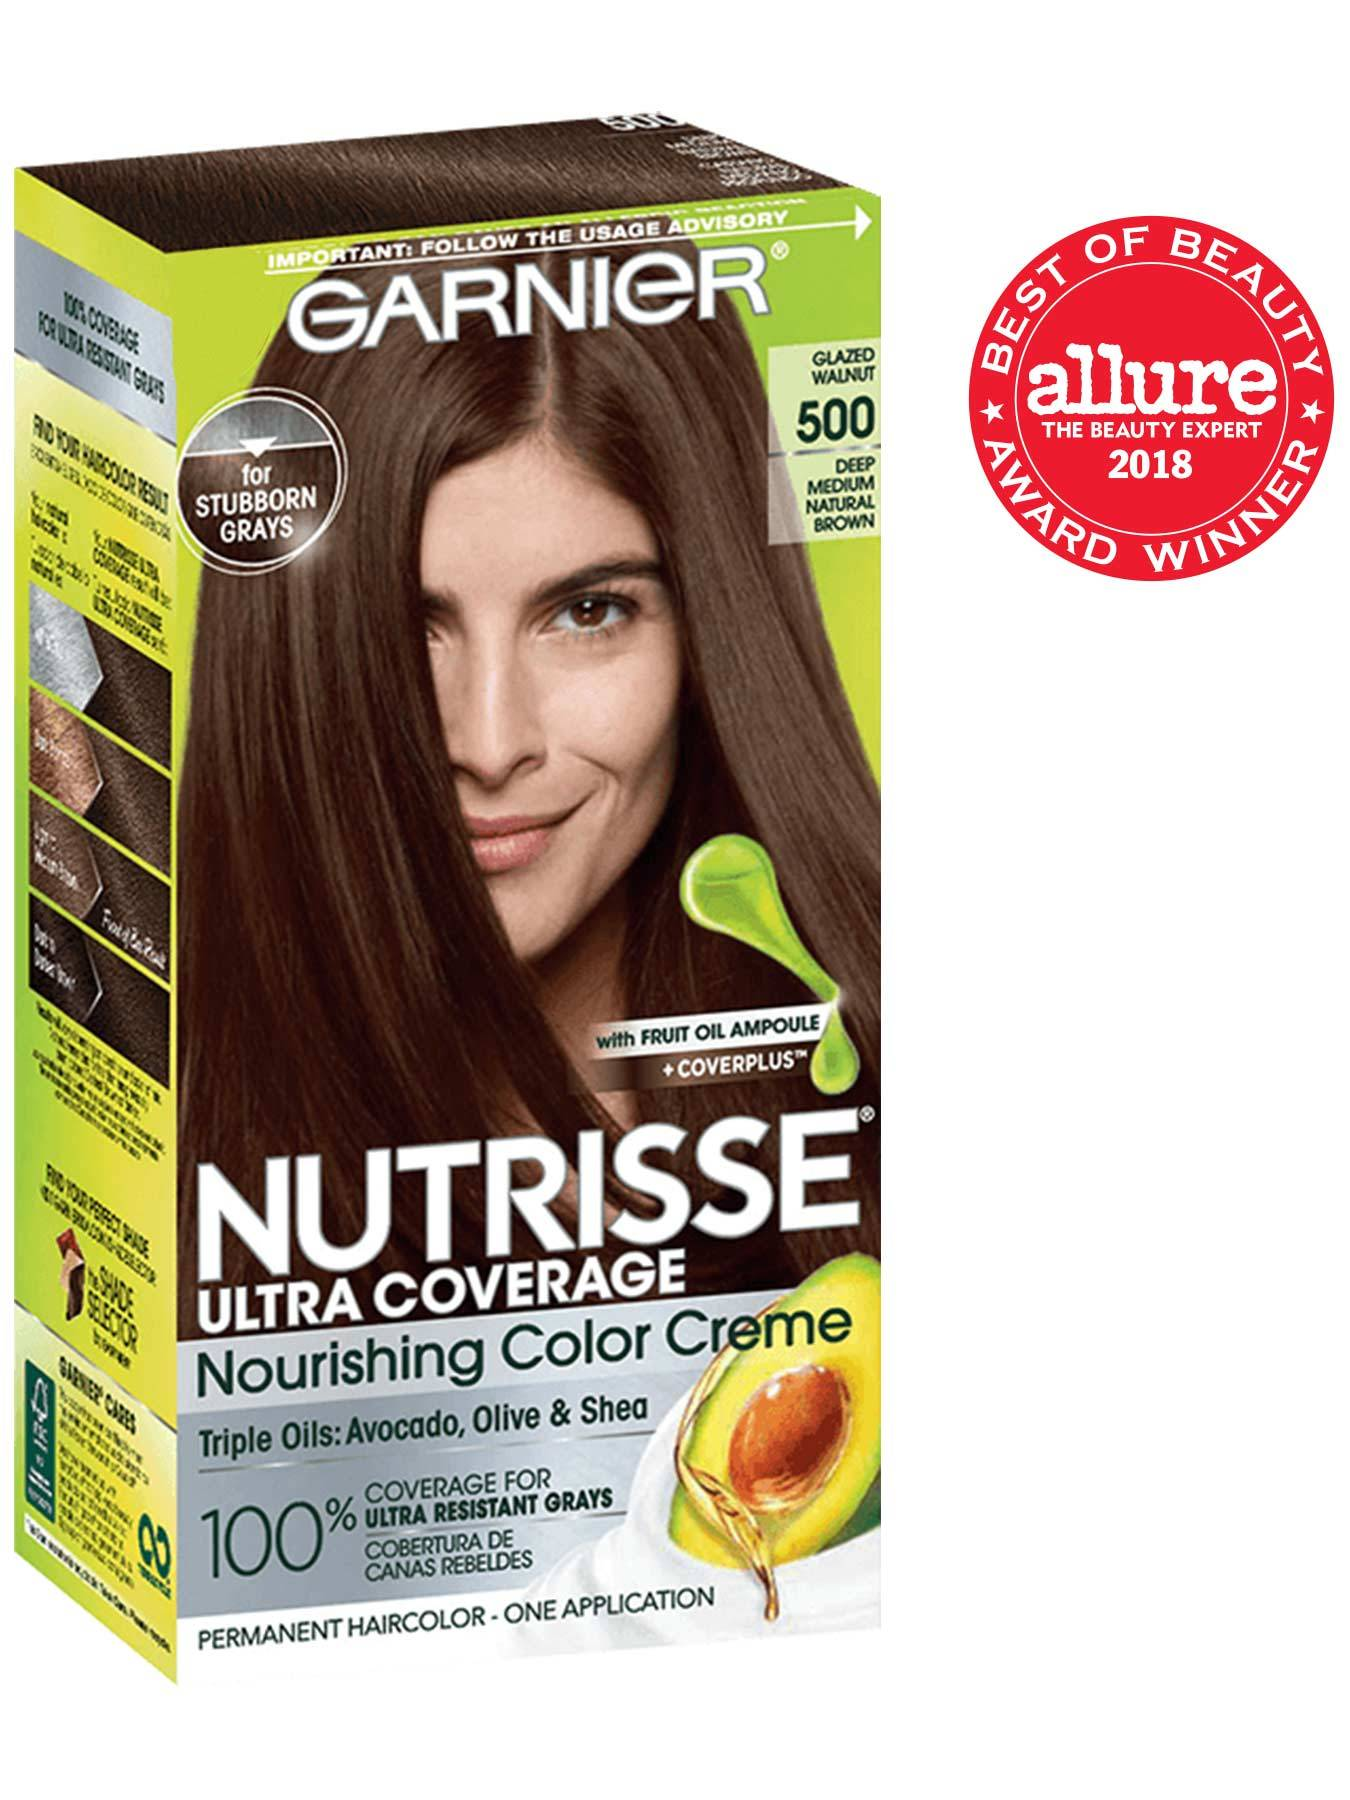 Nutrisse Ultra Coverage Neutral Medium Brown Hair Color